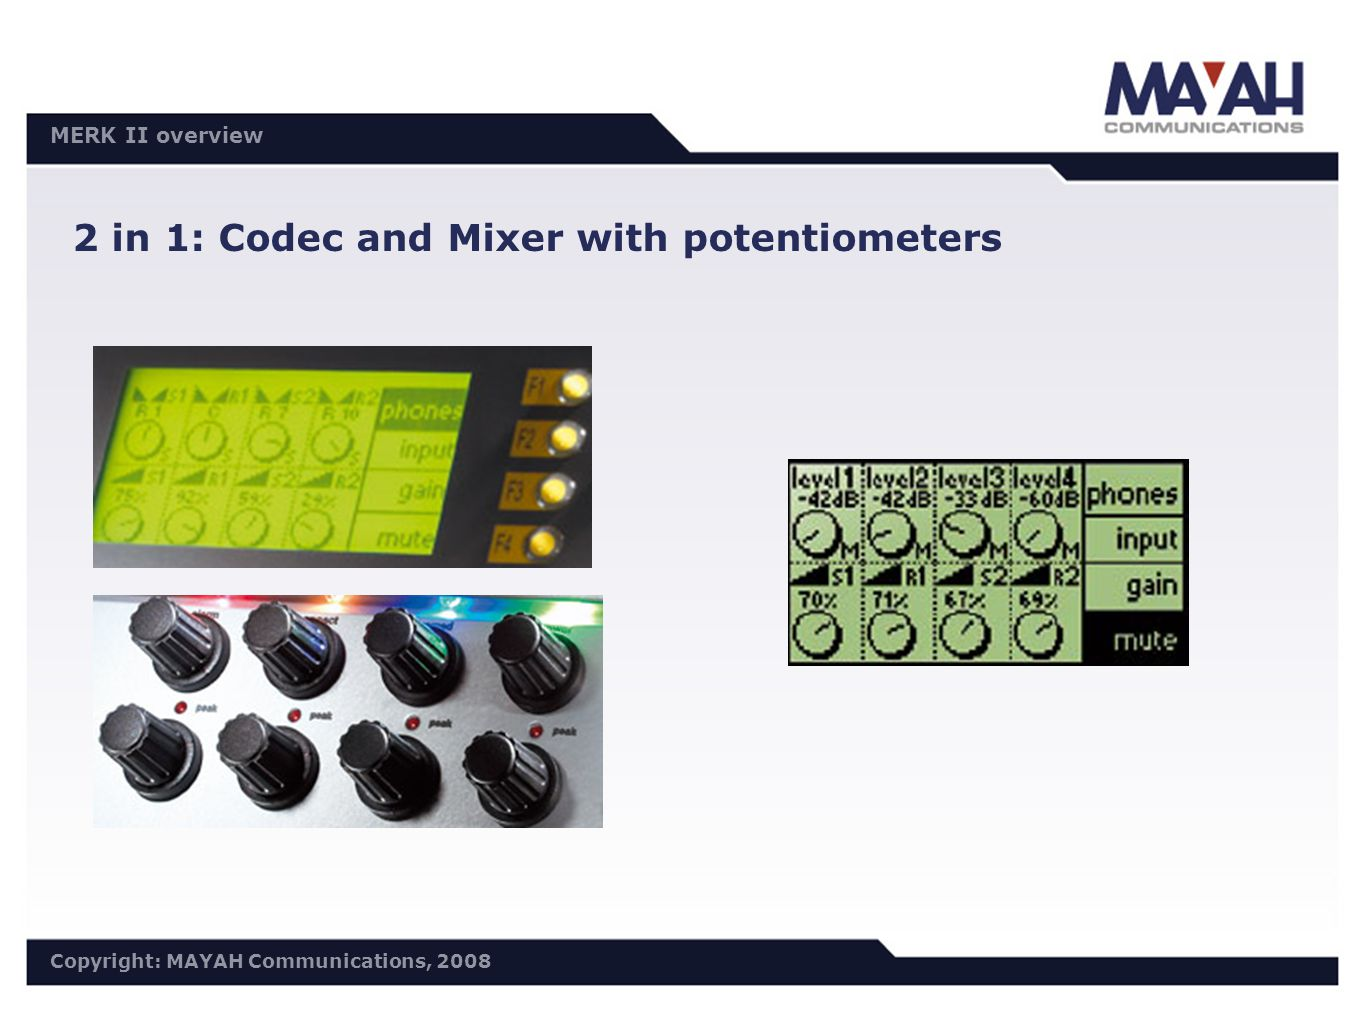 DISTRI Meeting 30.10./31.10.2006 Copyright: MAYAH Communications, 2006 MERK II overview Copyright: MAYAH Communications, 2008 2 in 1: Codec and Mixer with potentiometers